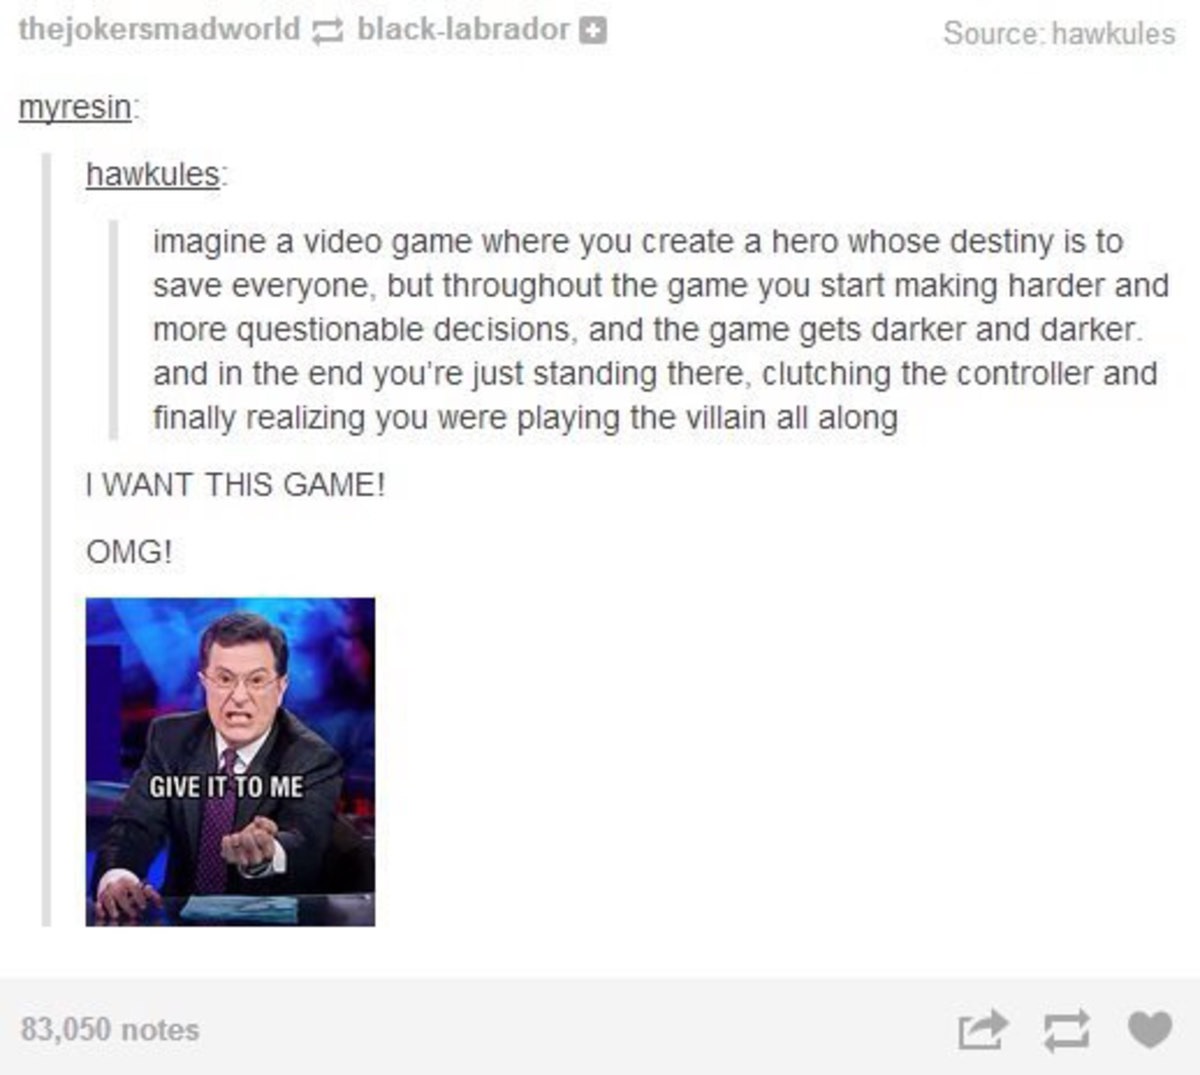 Either Die a Hero. .. OMG I WANT A GAME THAT LITERALLY HASNT BEEN DESCRIBED AT ALL whoever made this post originally